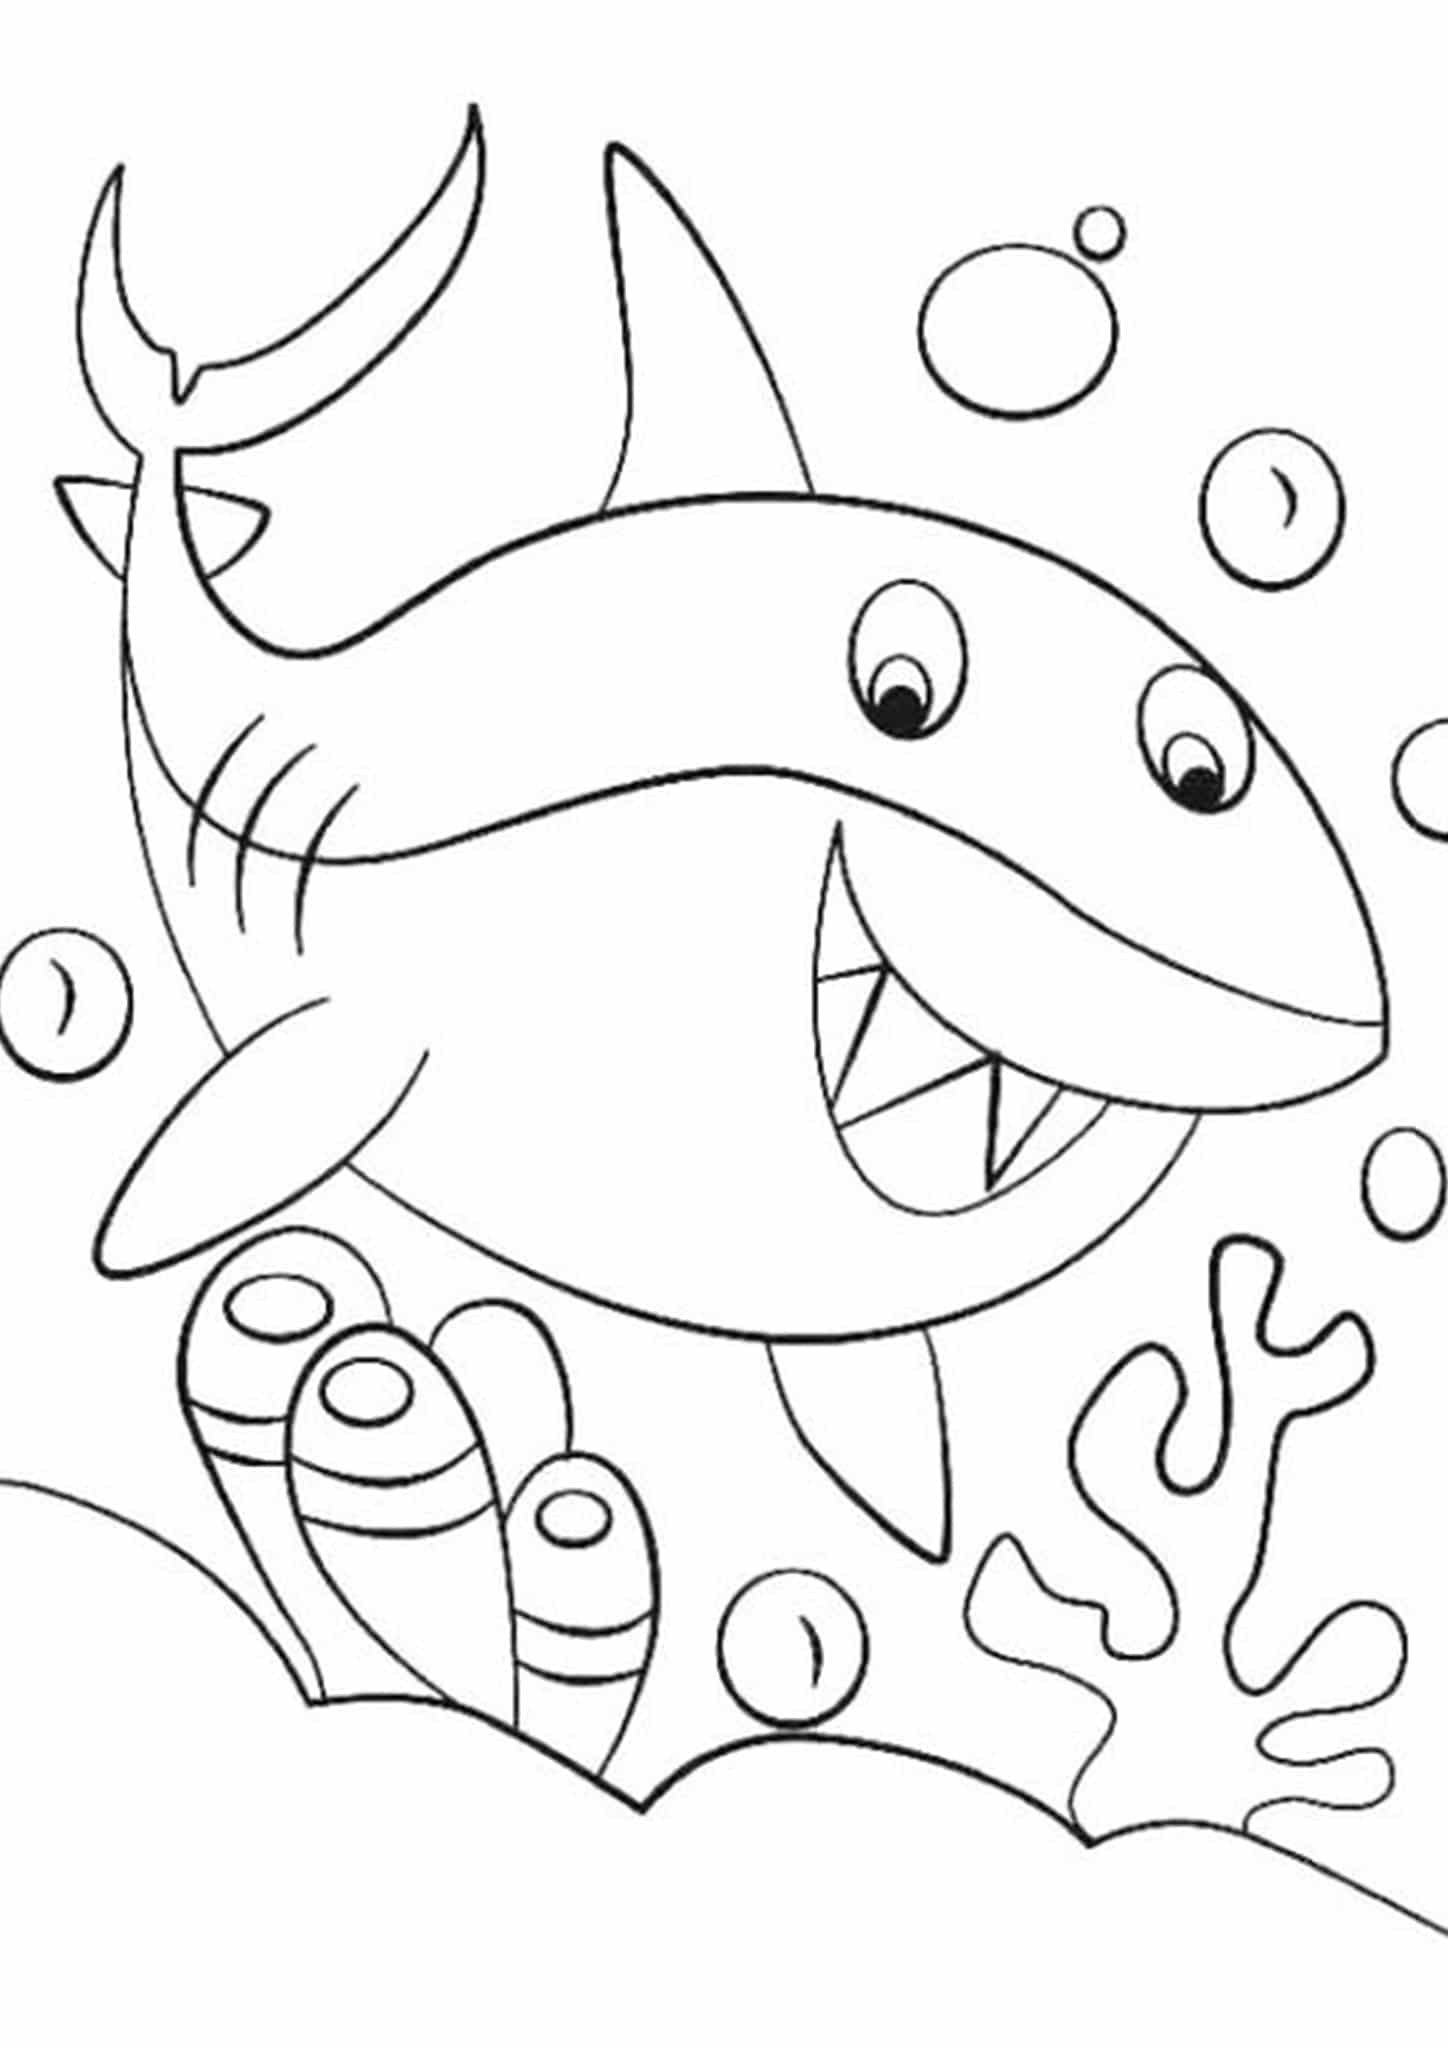 shark coloring pictures free easy to print shark coloring pages tulamama coloring pictures shark